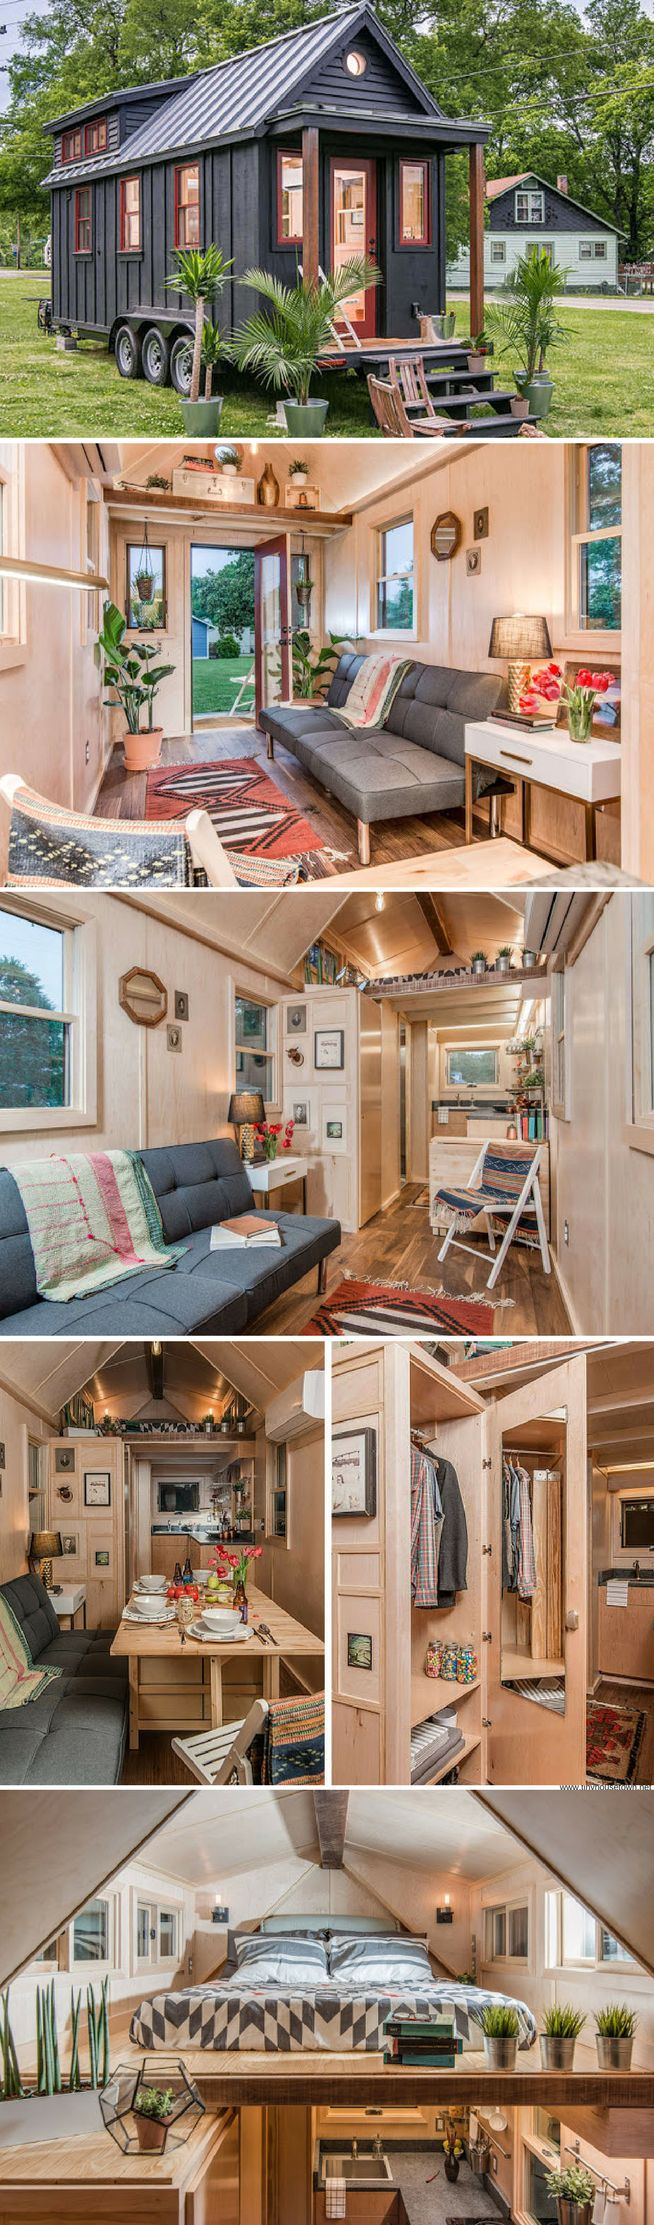 The Riverside Tiny House From New Frontier Homes